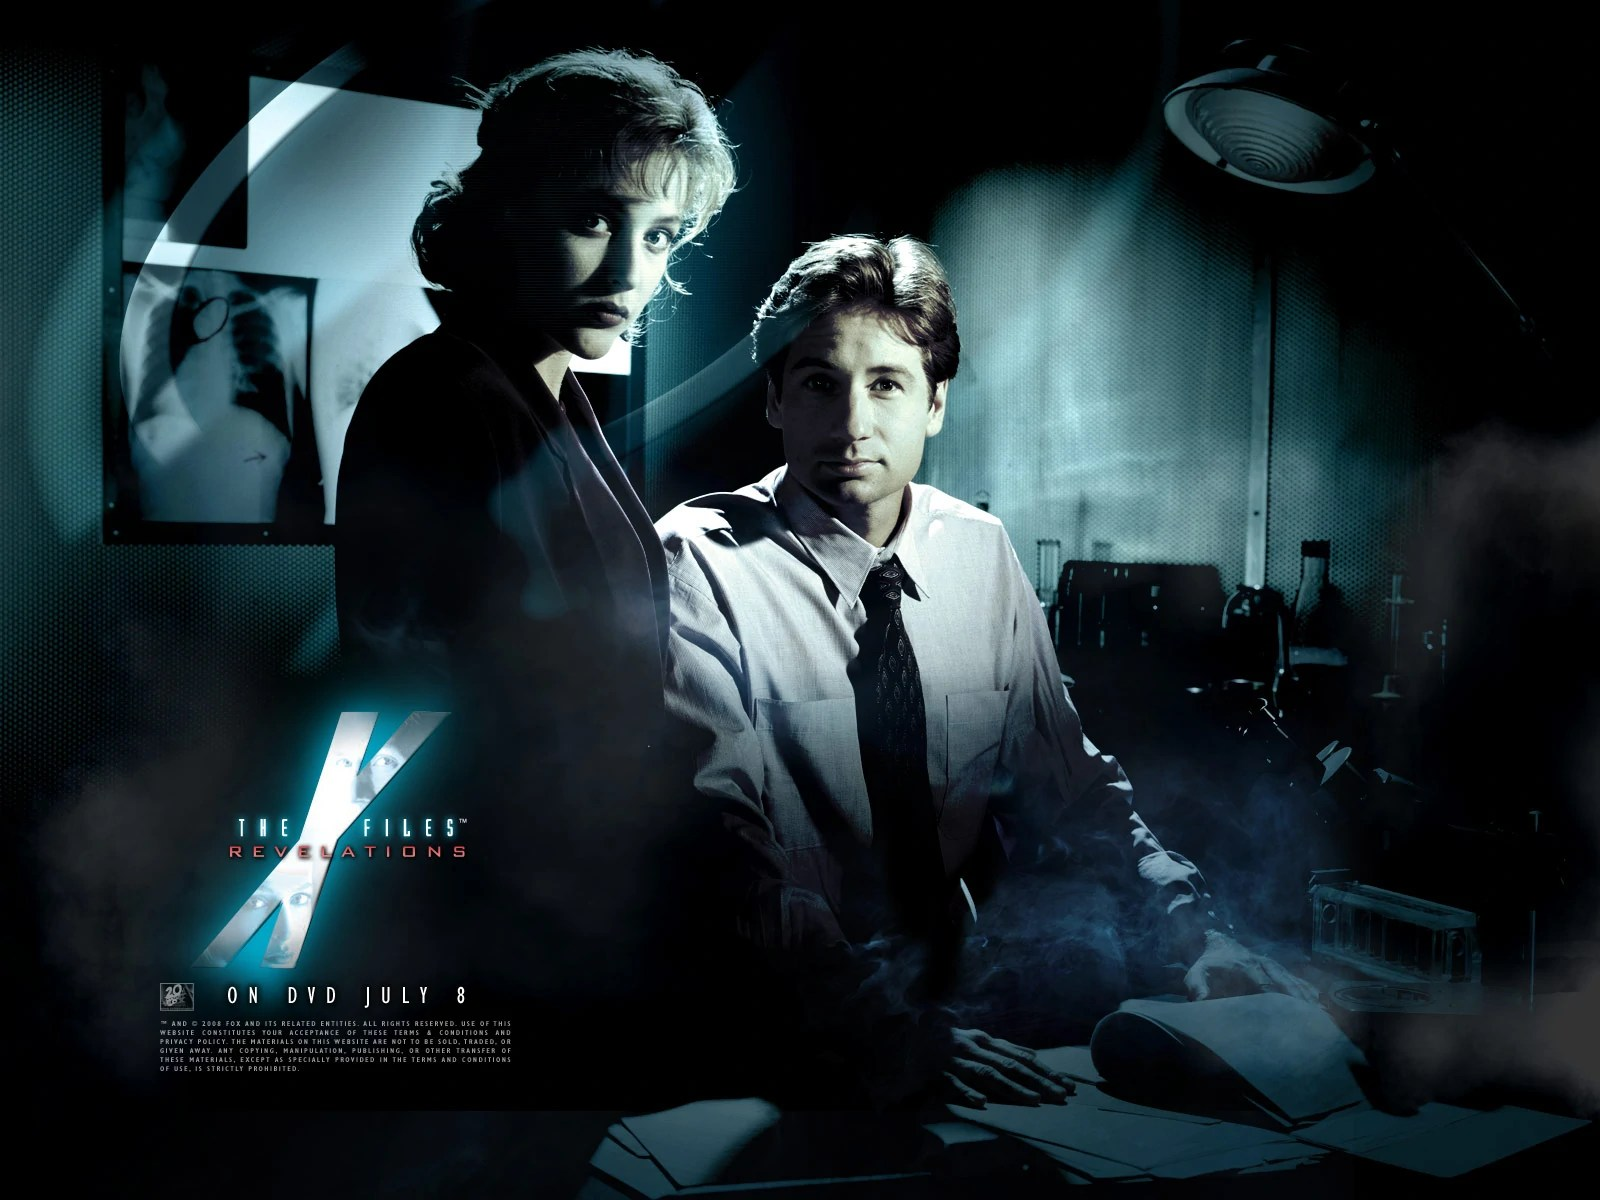 https://i0.wp.com/images.wikia.com/x-files/images/1/1b/The_X-Files.jpg